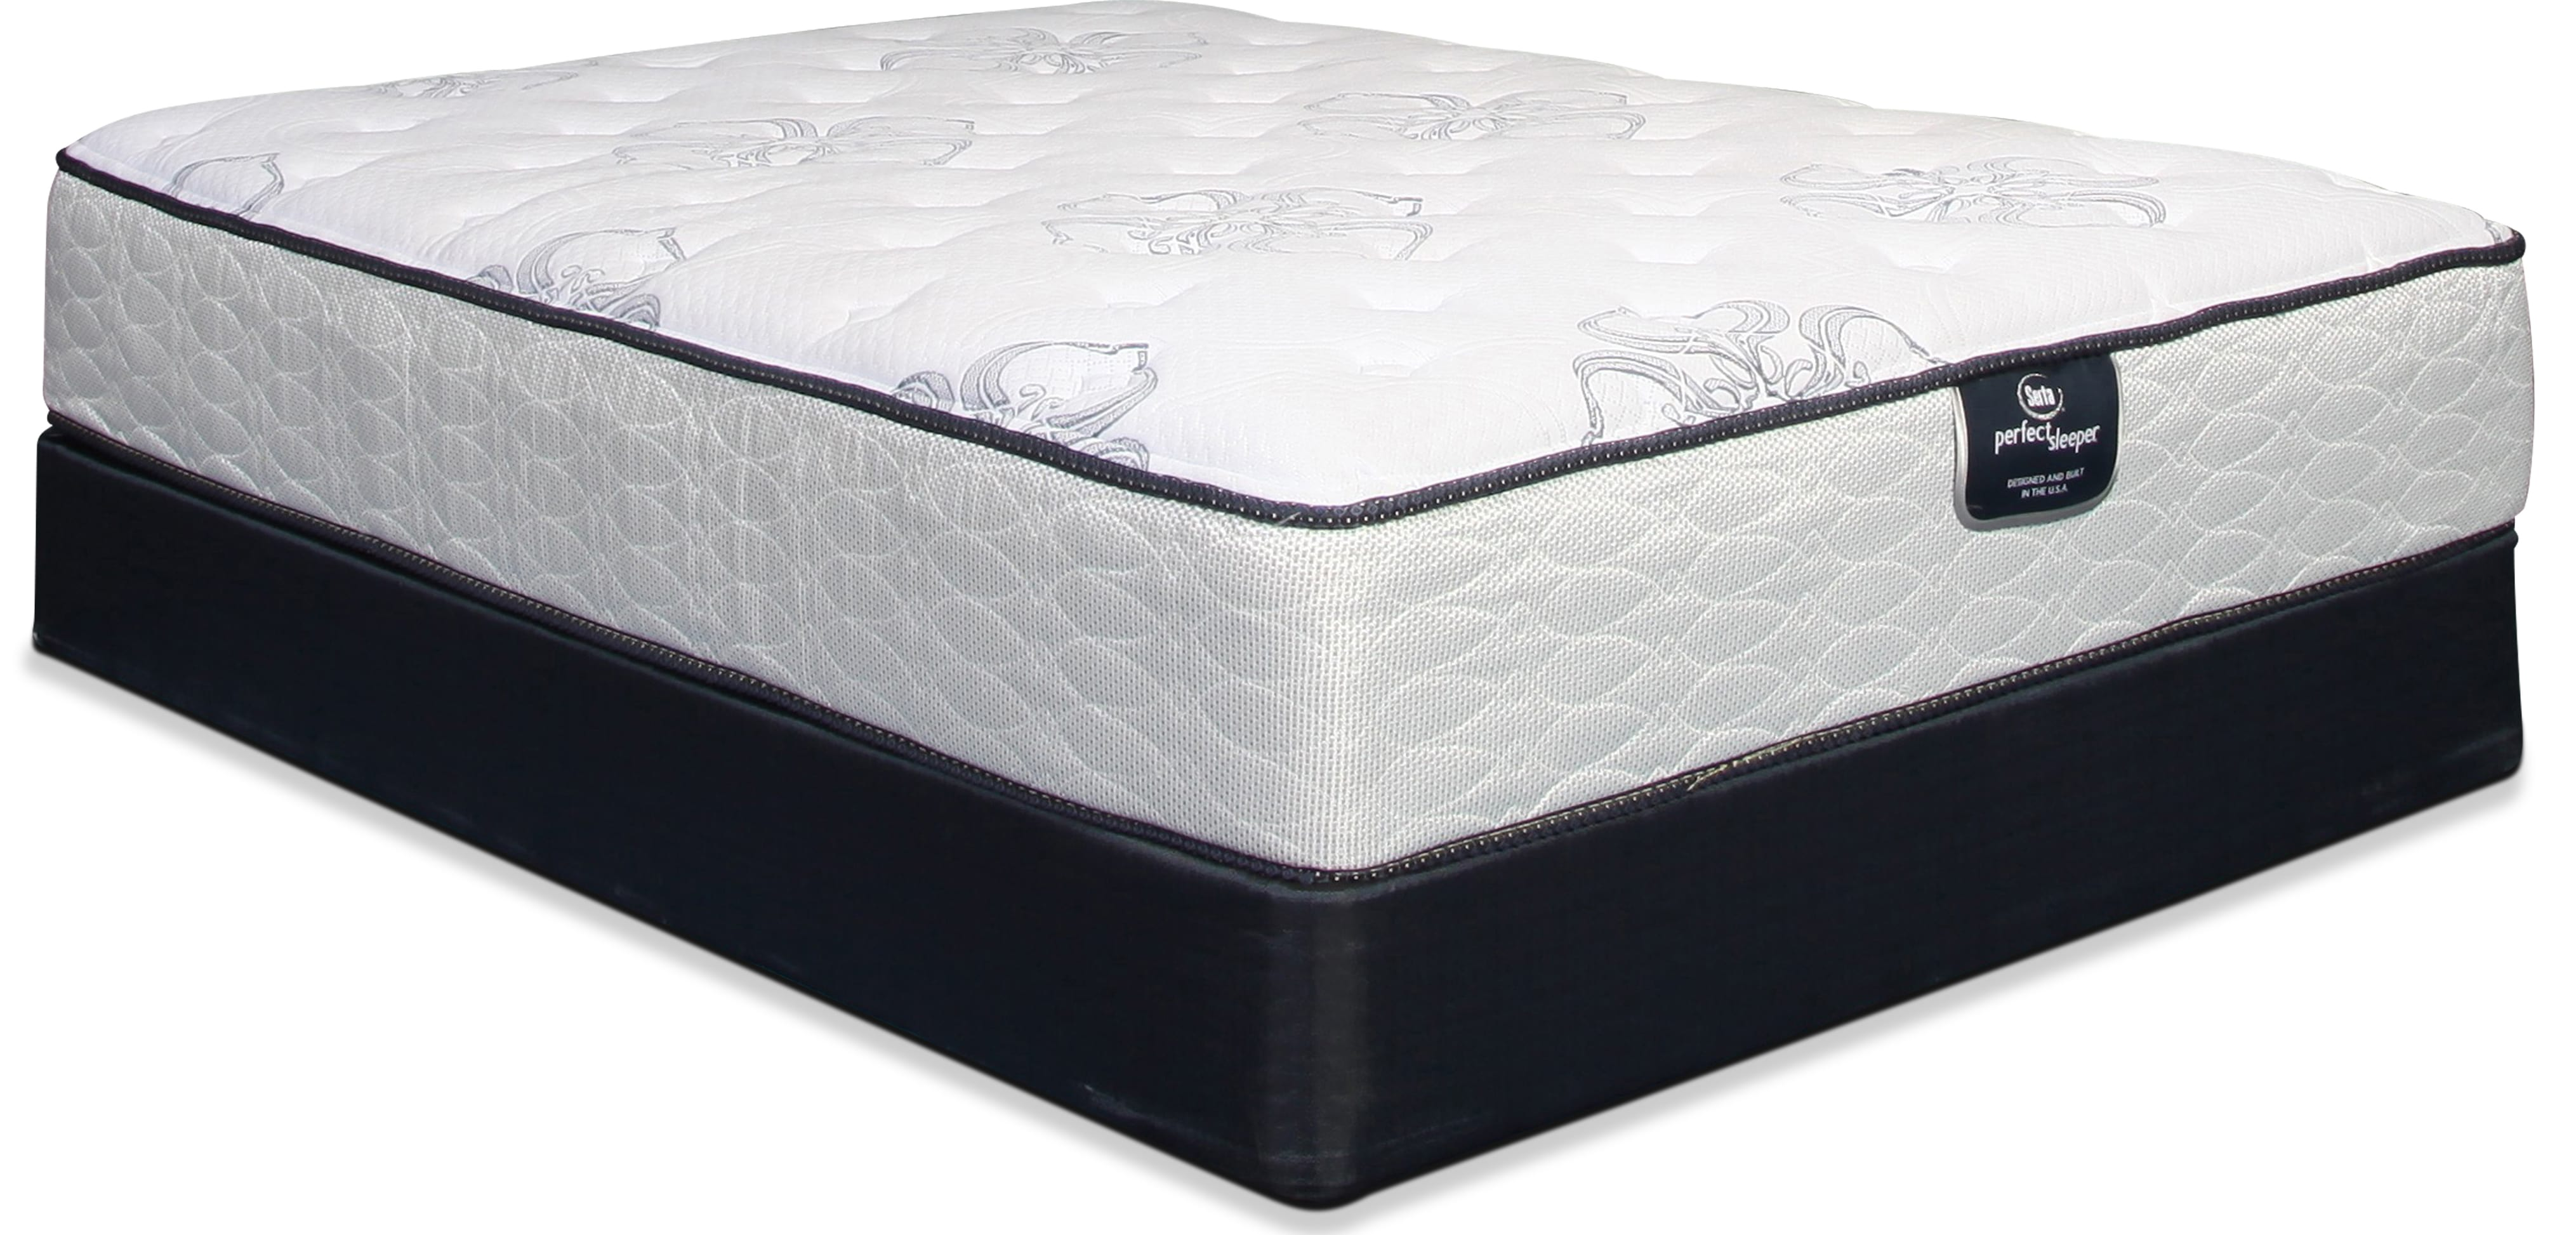 Serta Perfect Sleeper Plush King Mattress and Split Boxsprings